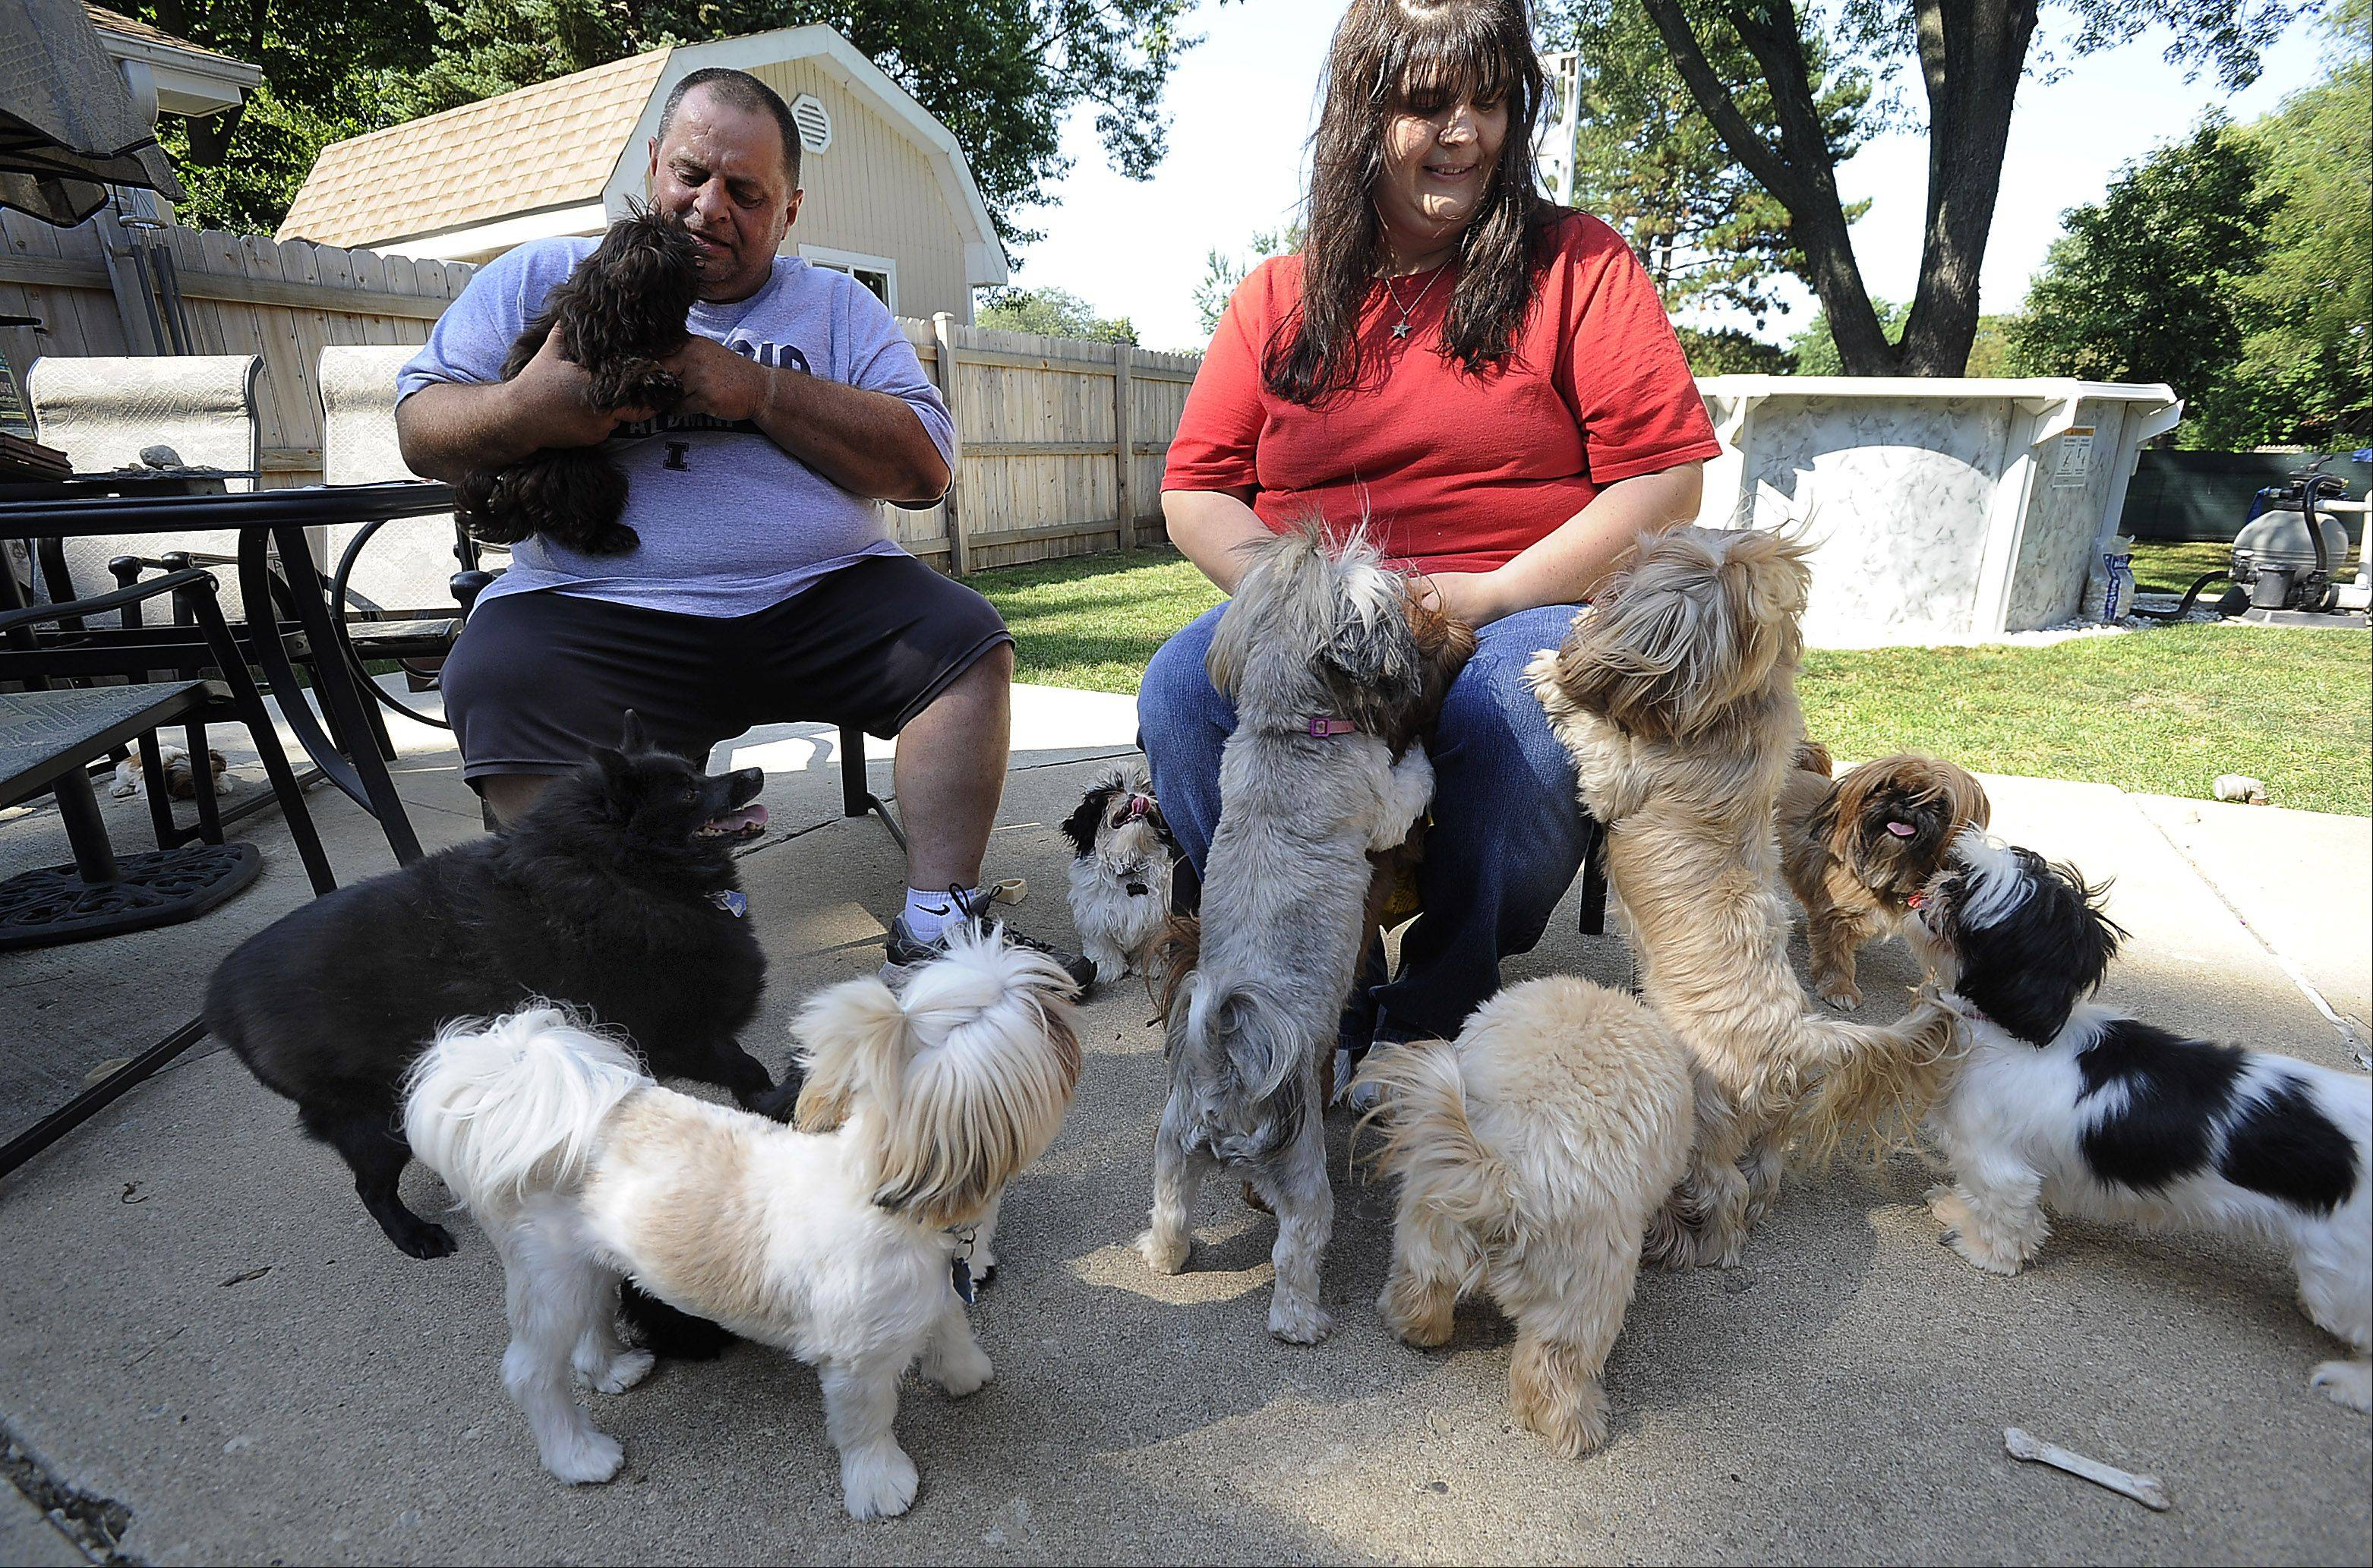 Kent and Cindy Weik of Elk Grove Village started breeding dogs out of their home in 2009, which caused one neighbor to complain to the village, landing the couple in court.